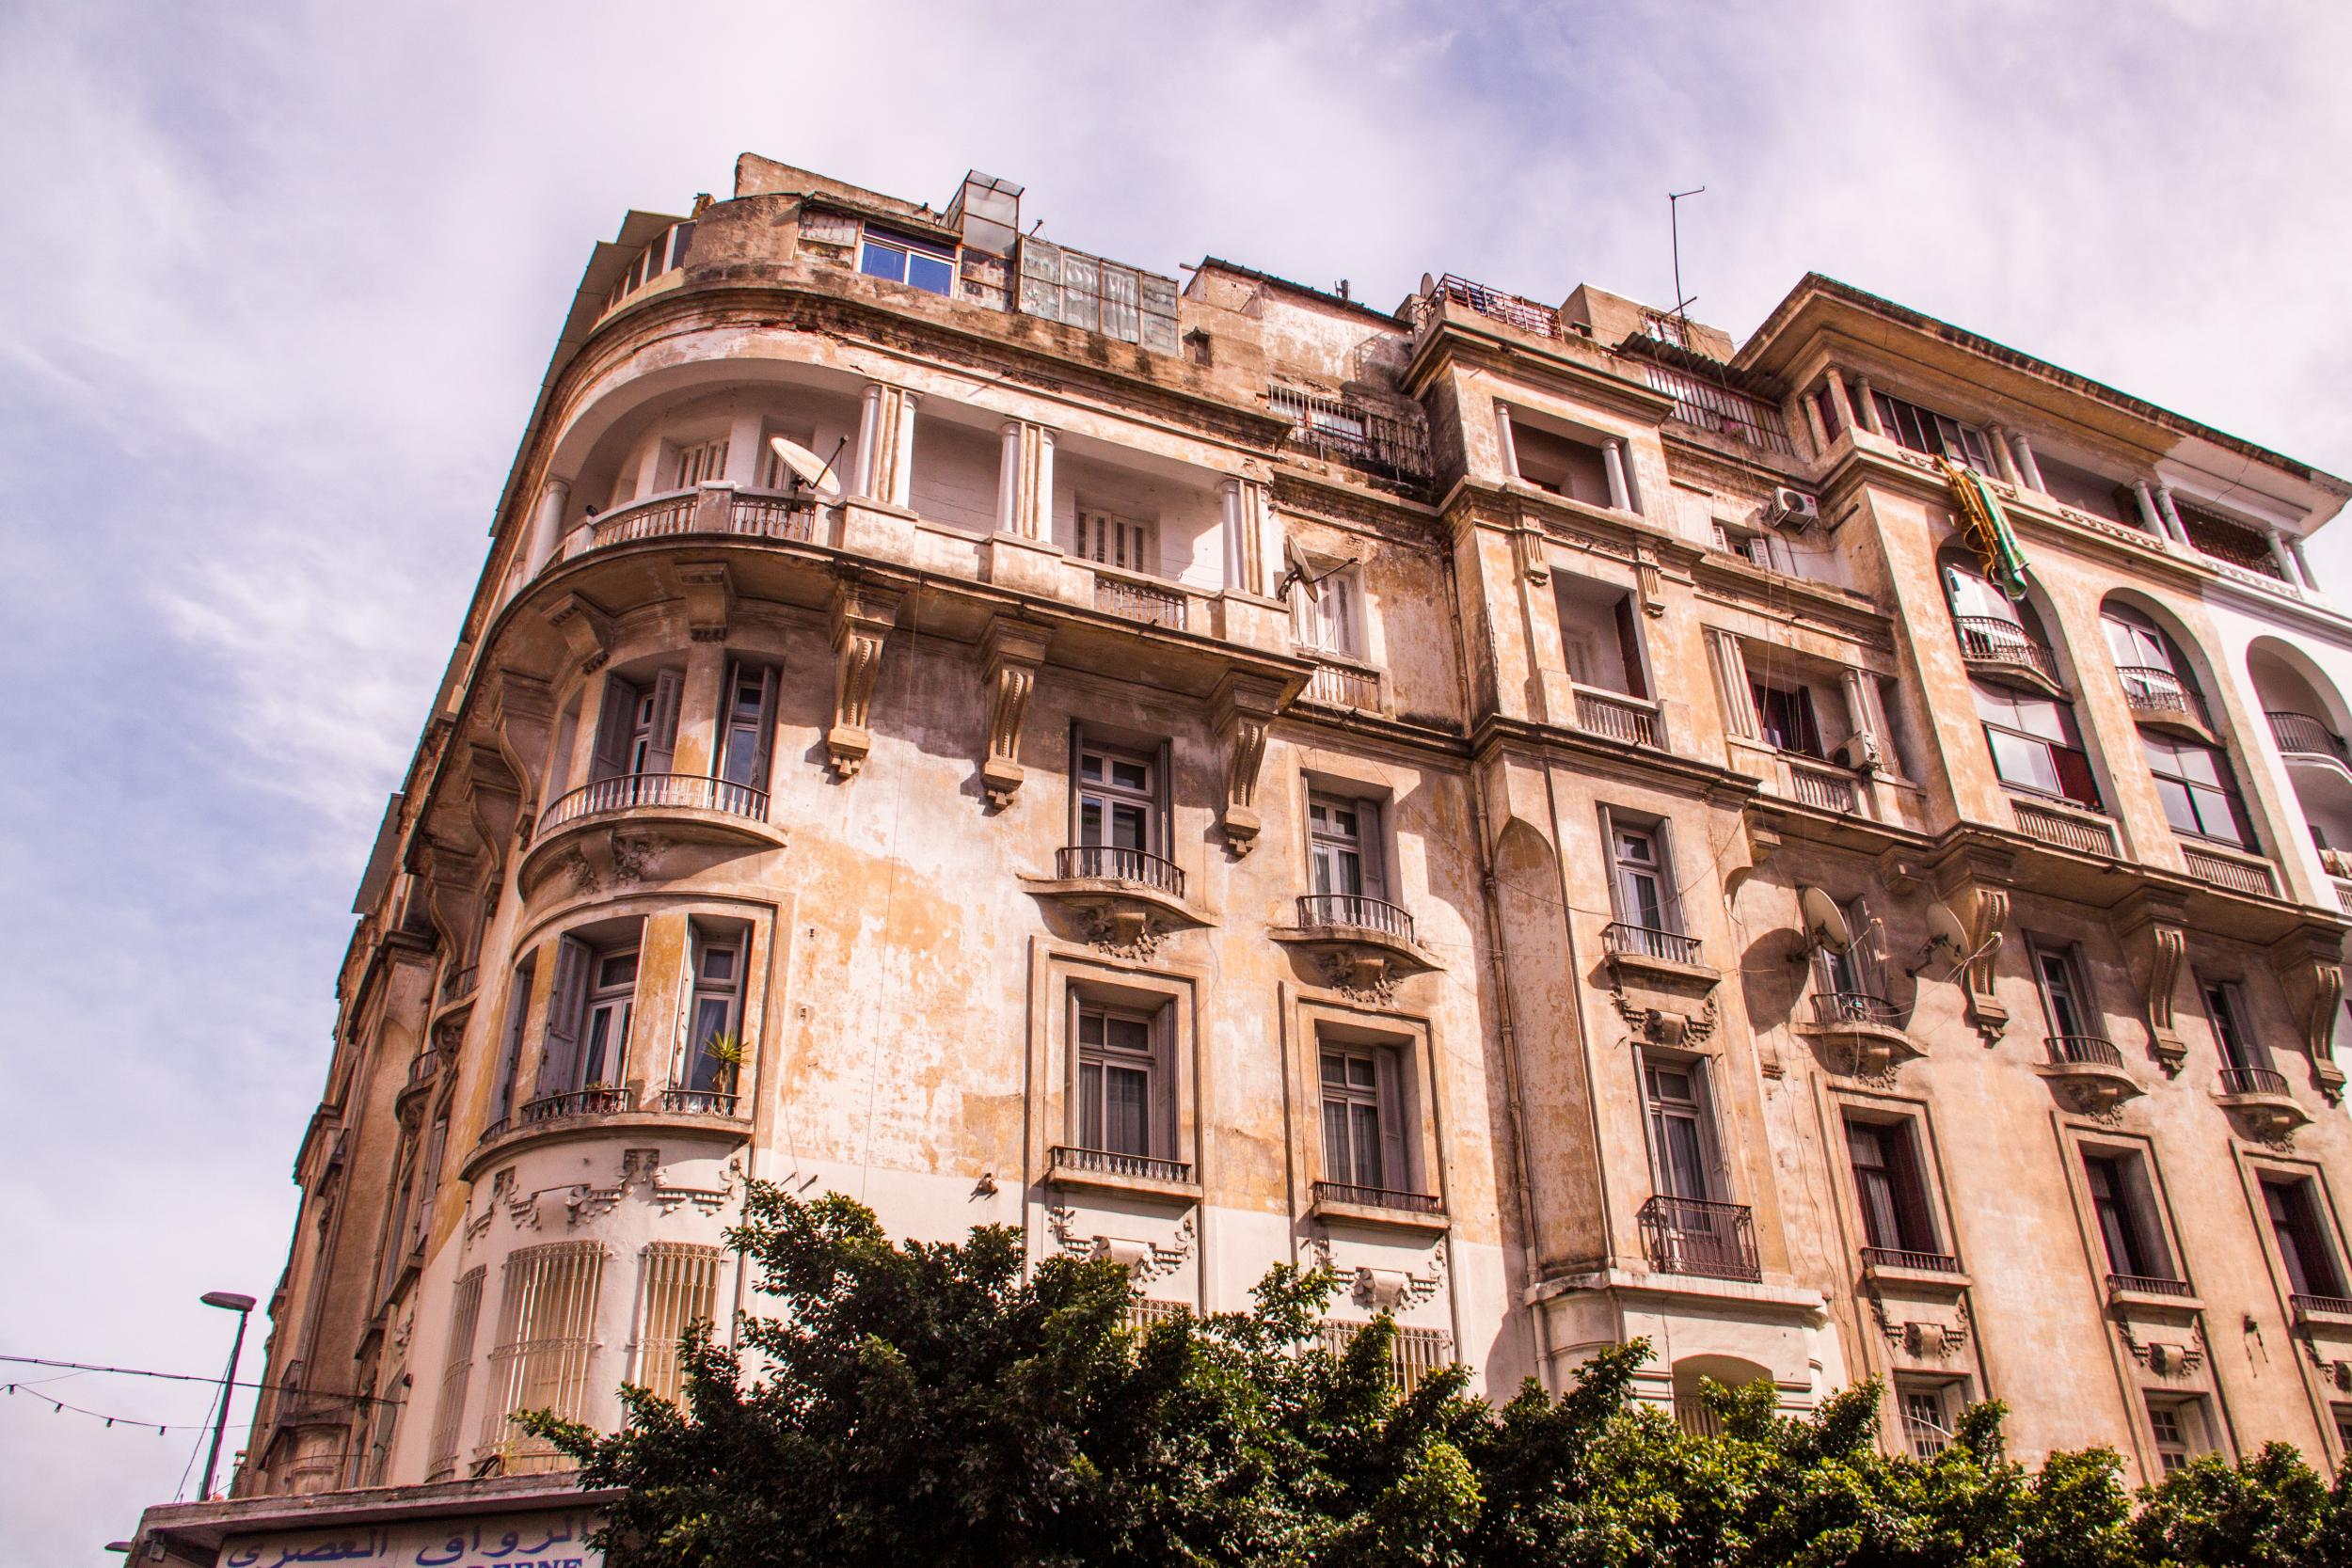 Casamemoire Why Casablanca S Art Deco Architecture Needs Urgent Protection The Independent The Independent